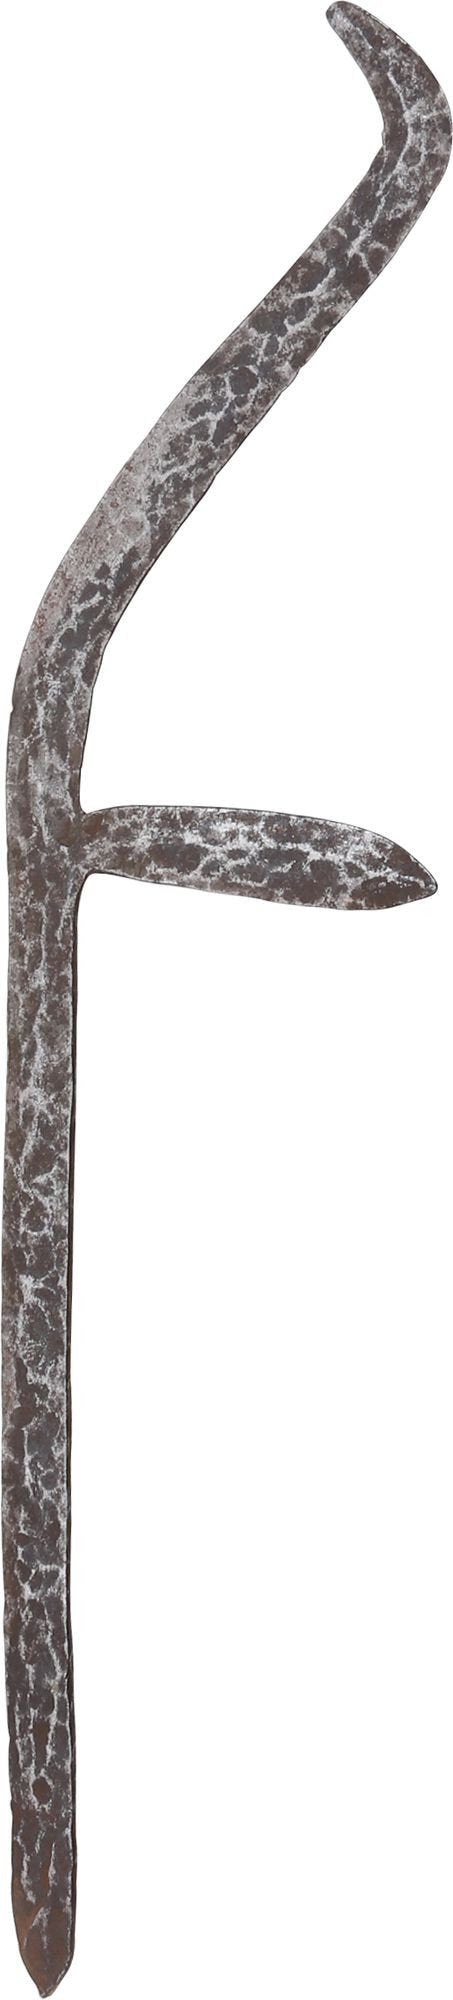 African Throwing Knife - Product